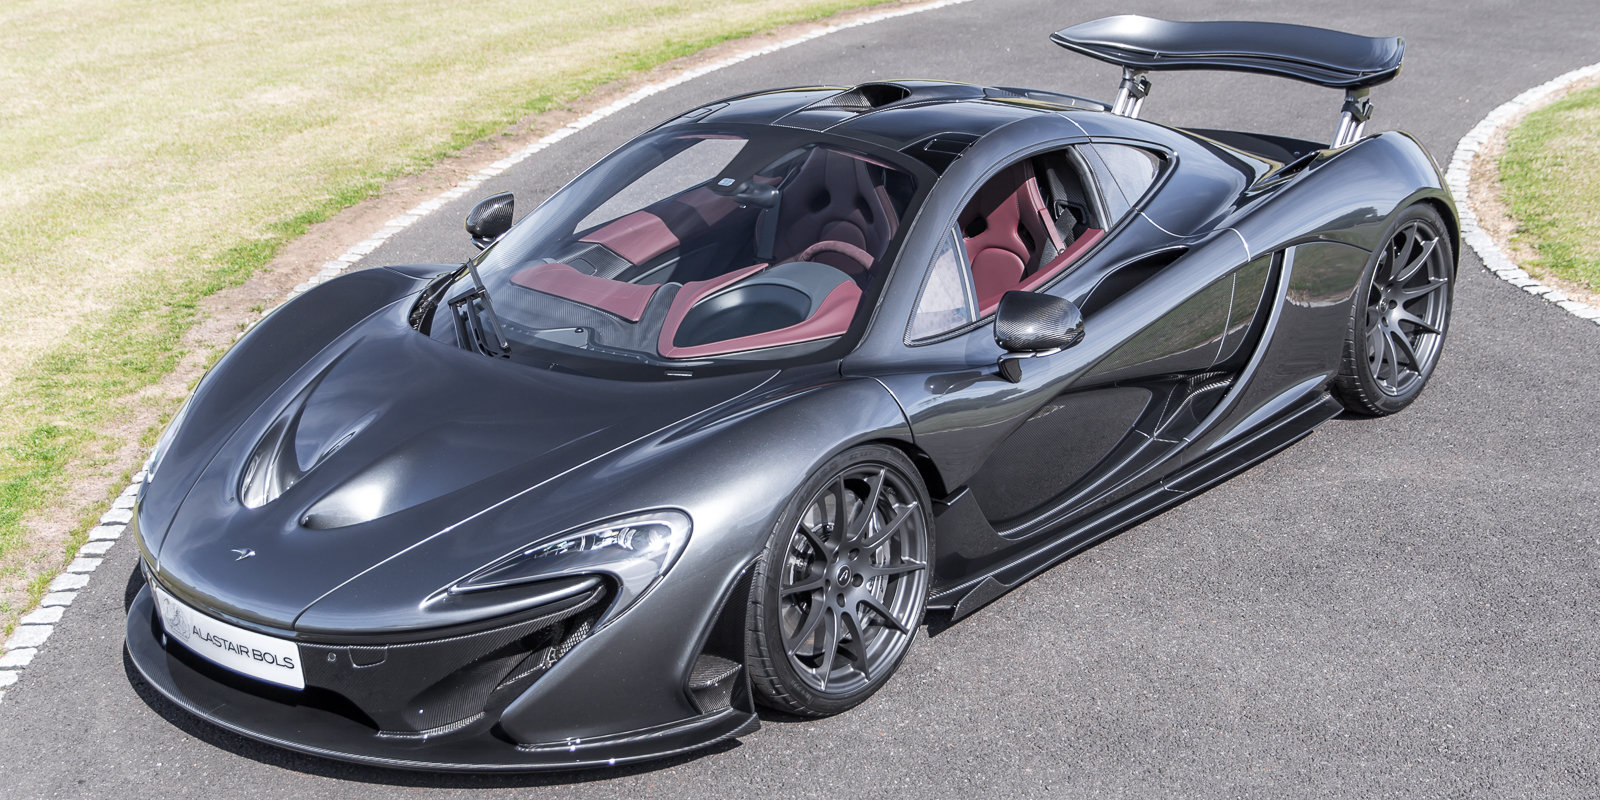 2014 McLaren P1 - UK Supplied, 1 owner & just had major service For Sale (picture 1 of 6)